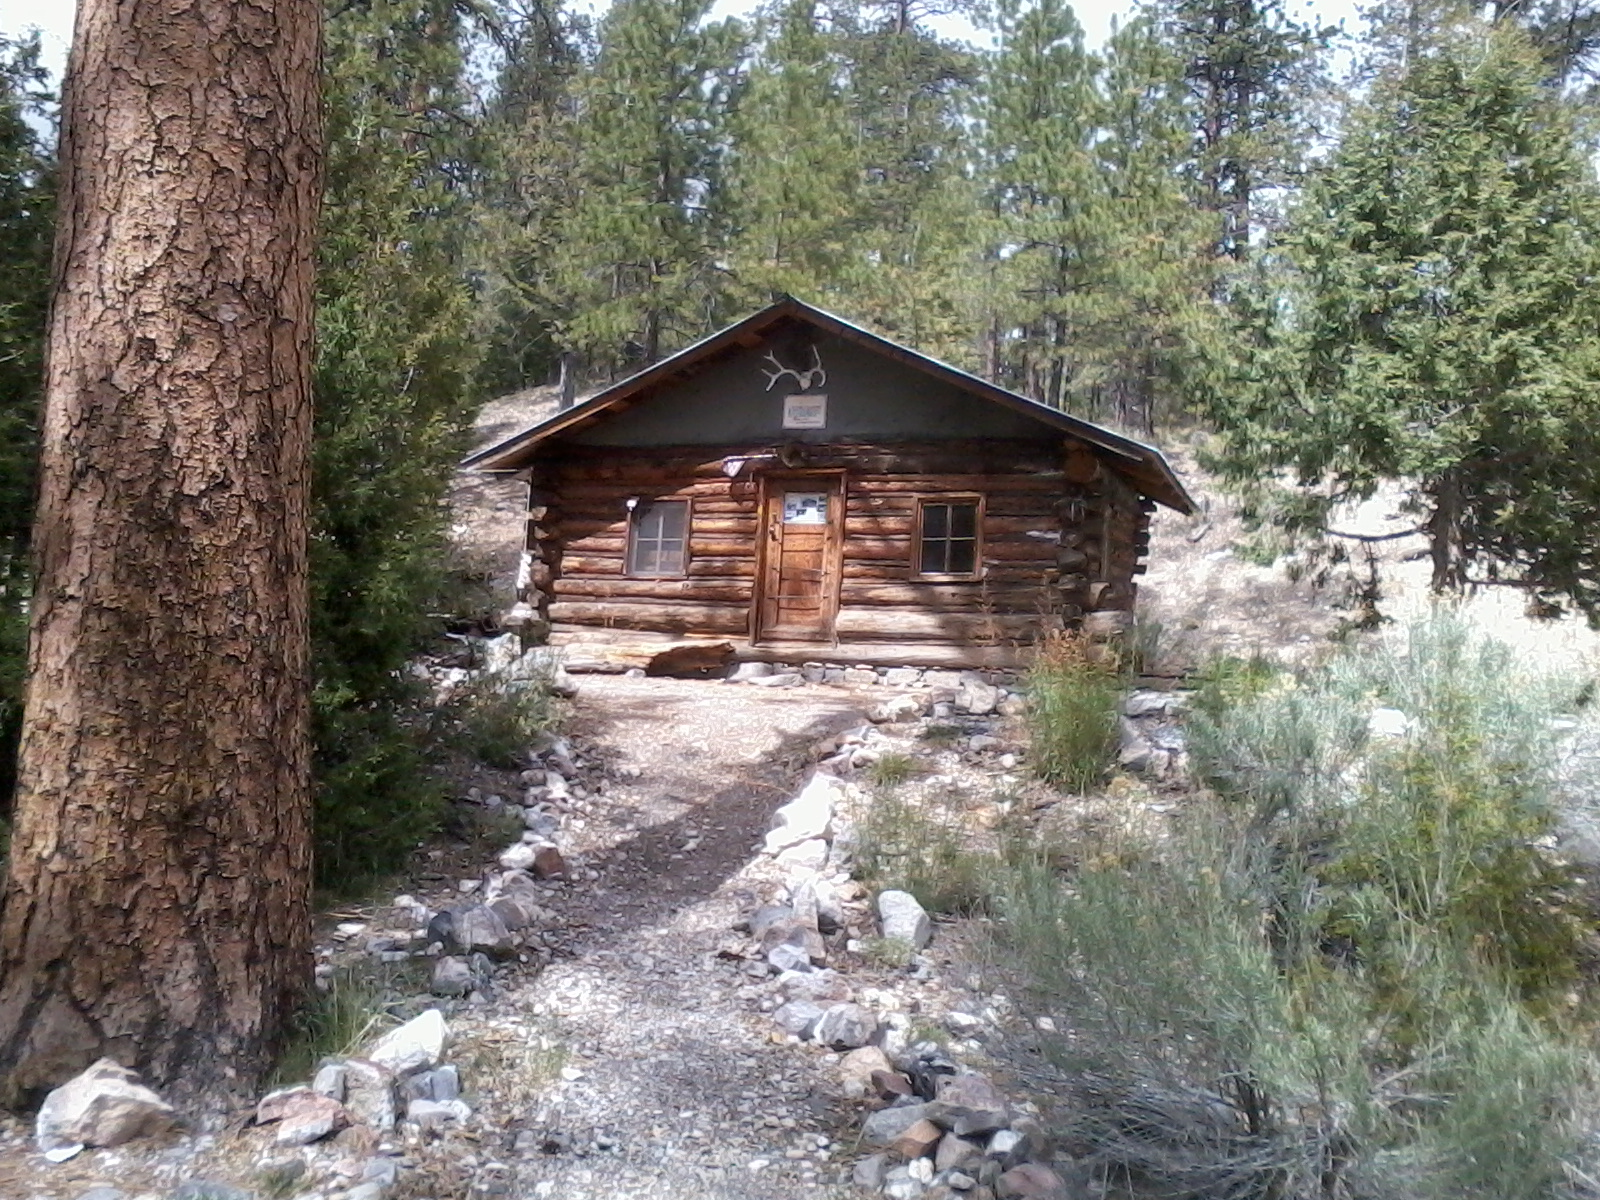 WARDENS CABIN, 8000 FEET